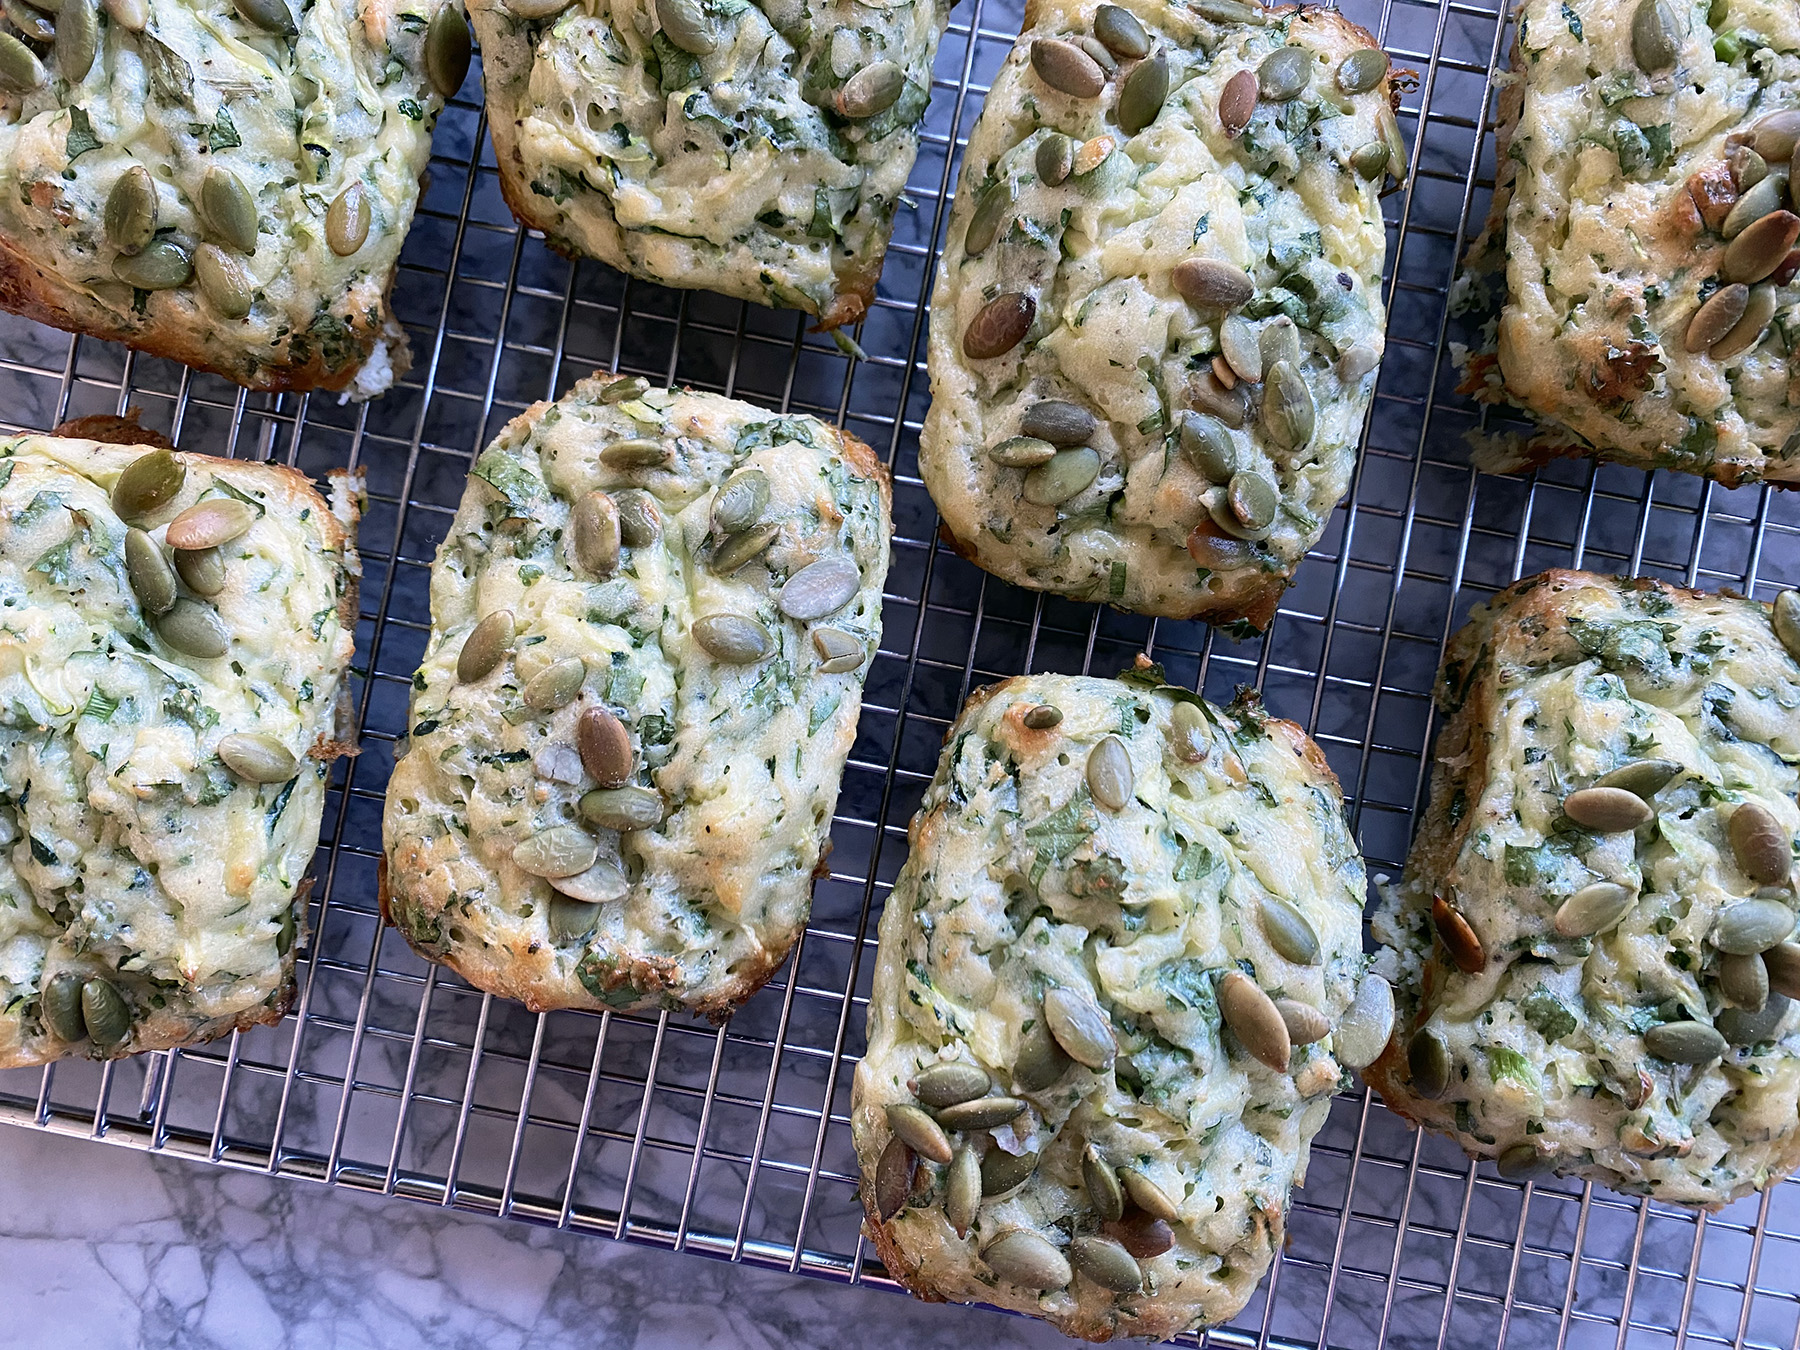 Herby Ricotta and Zucchini Muffins